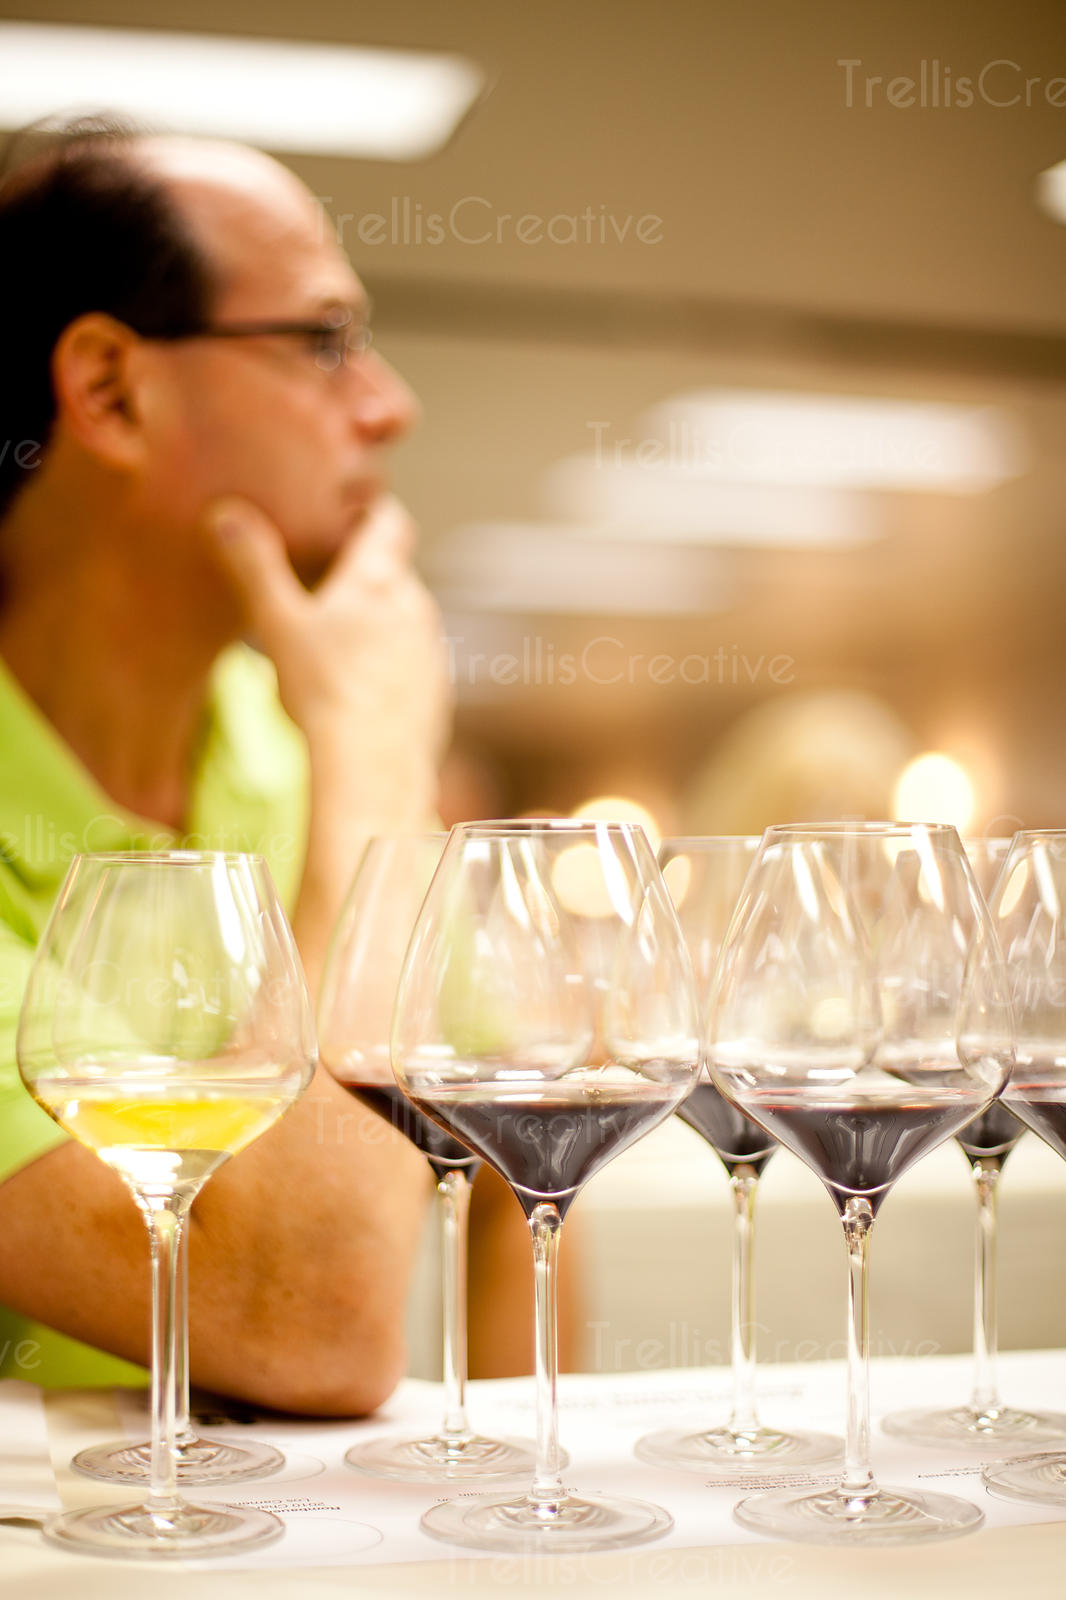 Man in front of wine glasses